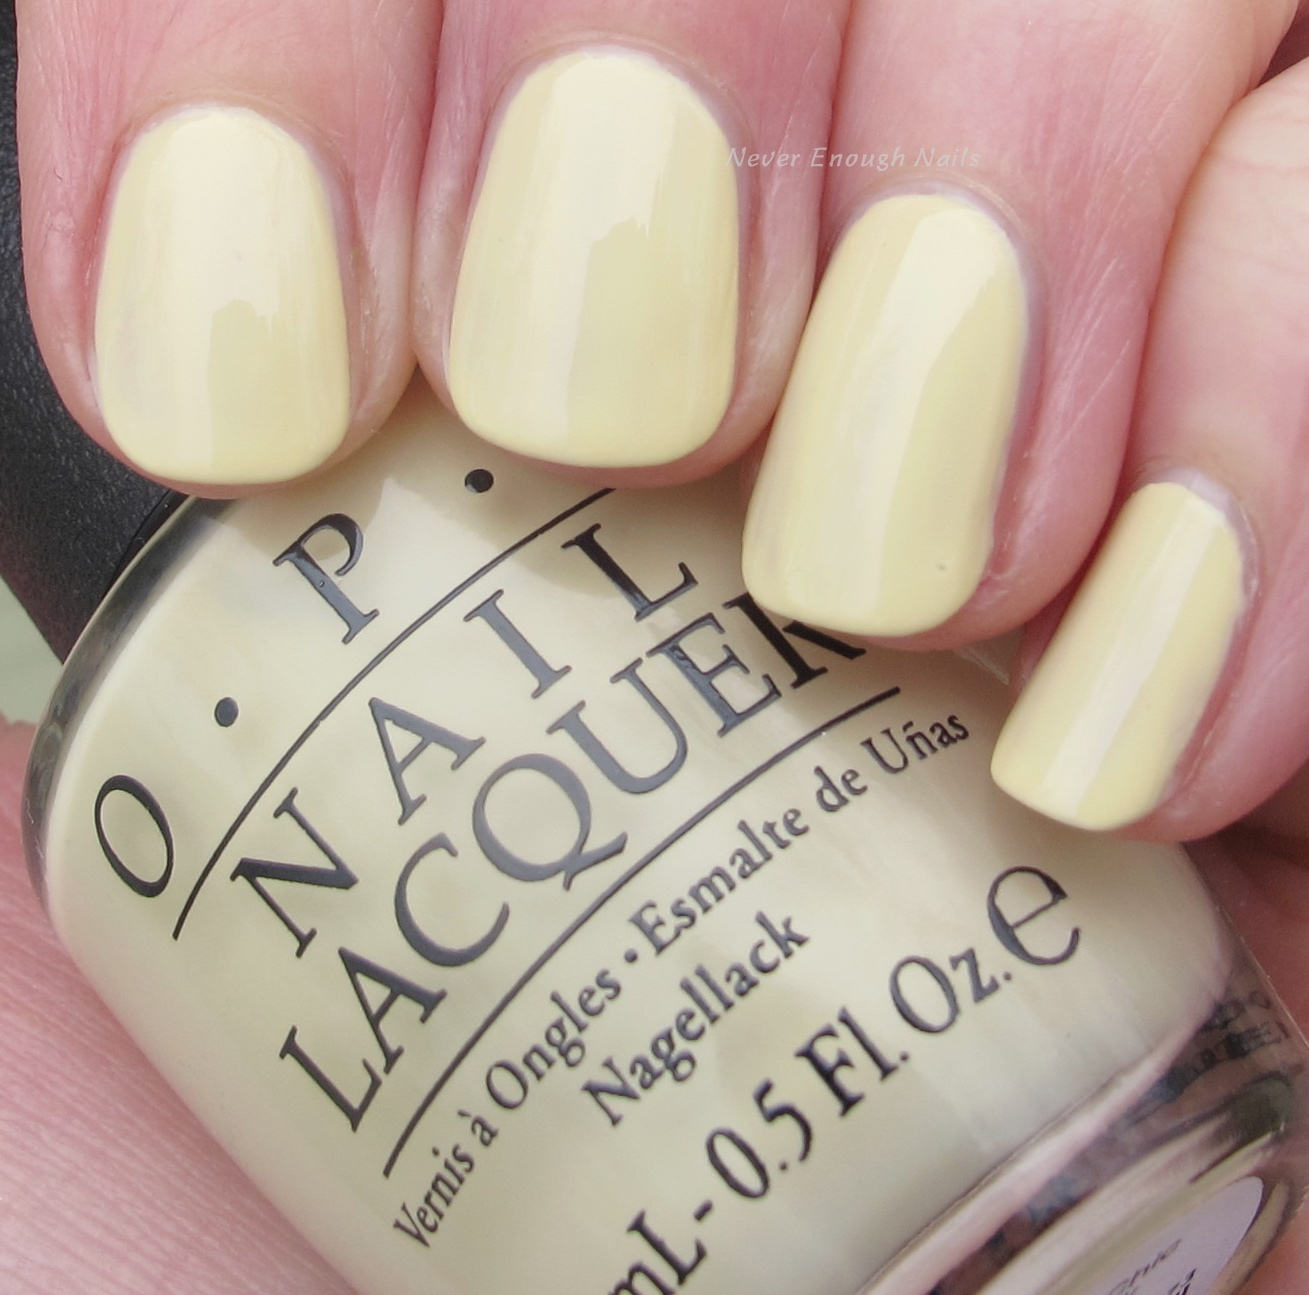 How Could You Have A Really Good Pastel Collection Without Baby Chicken Yellow Luckily For Us OPI Included Great One Here Chic Chick